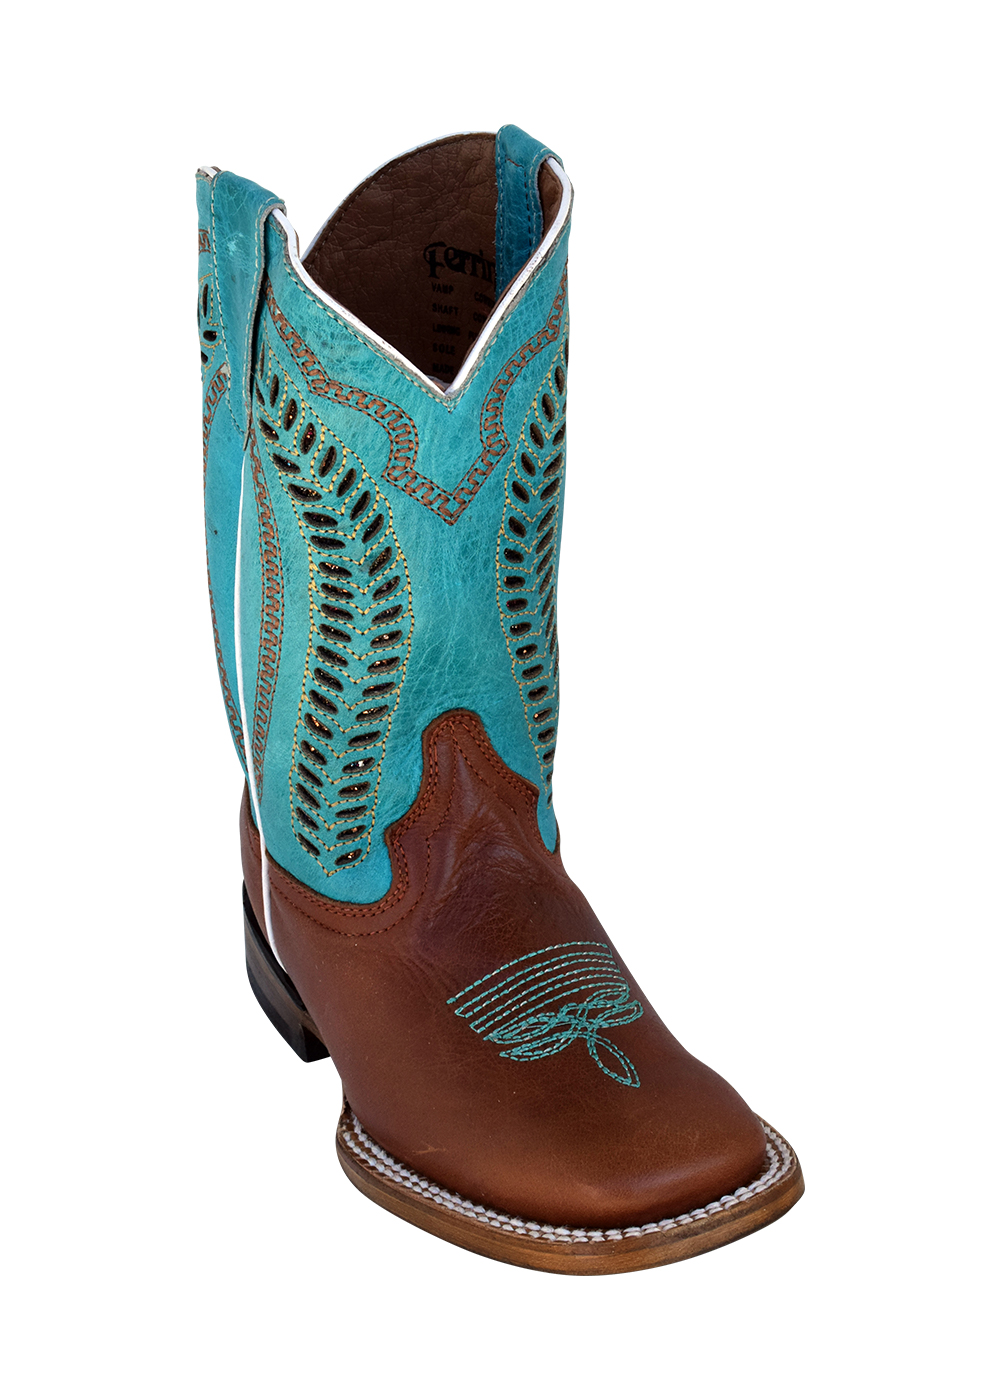 Ferrini Kid's Cowhide Cowboy Boot in Brown/Turquoise